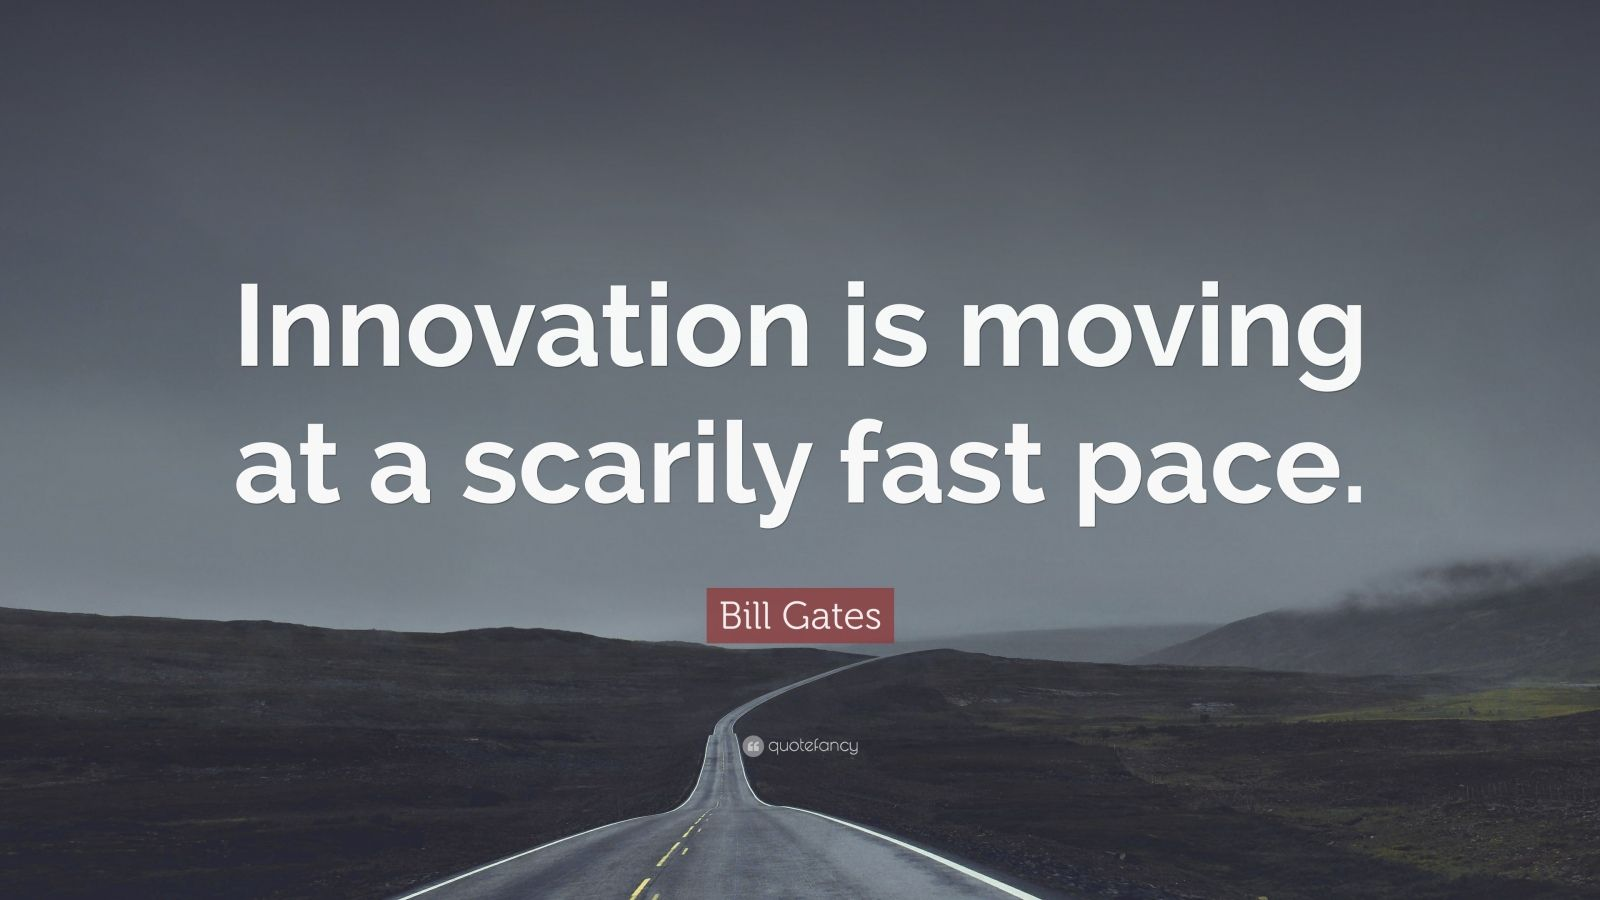 Quotes Gate Bill Gates Quotes 100 Wallpapers  Quotefancy